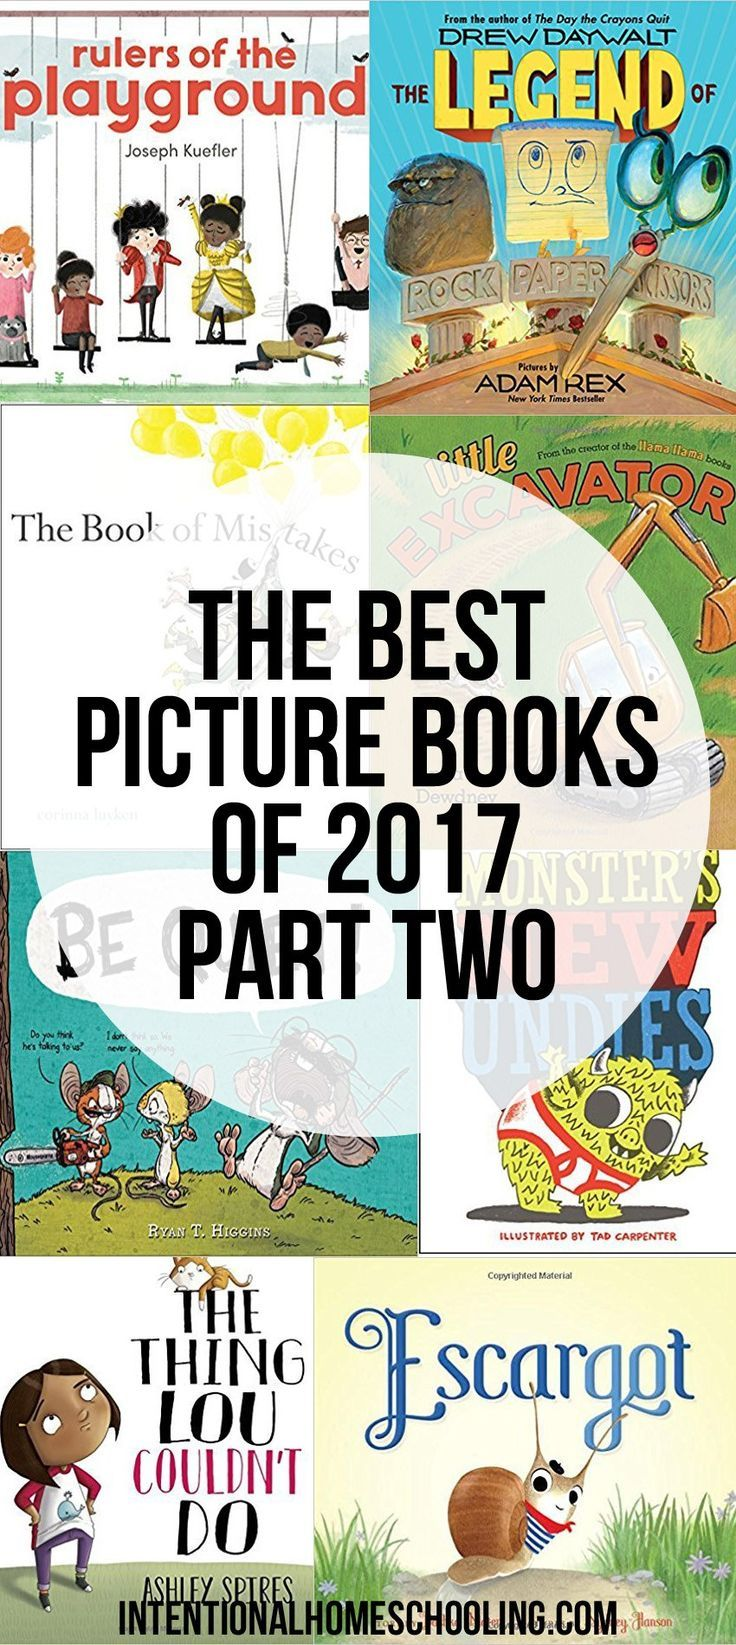 Great picture books!